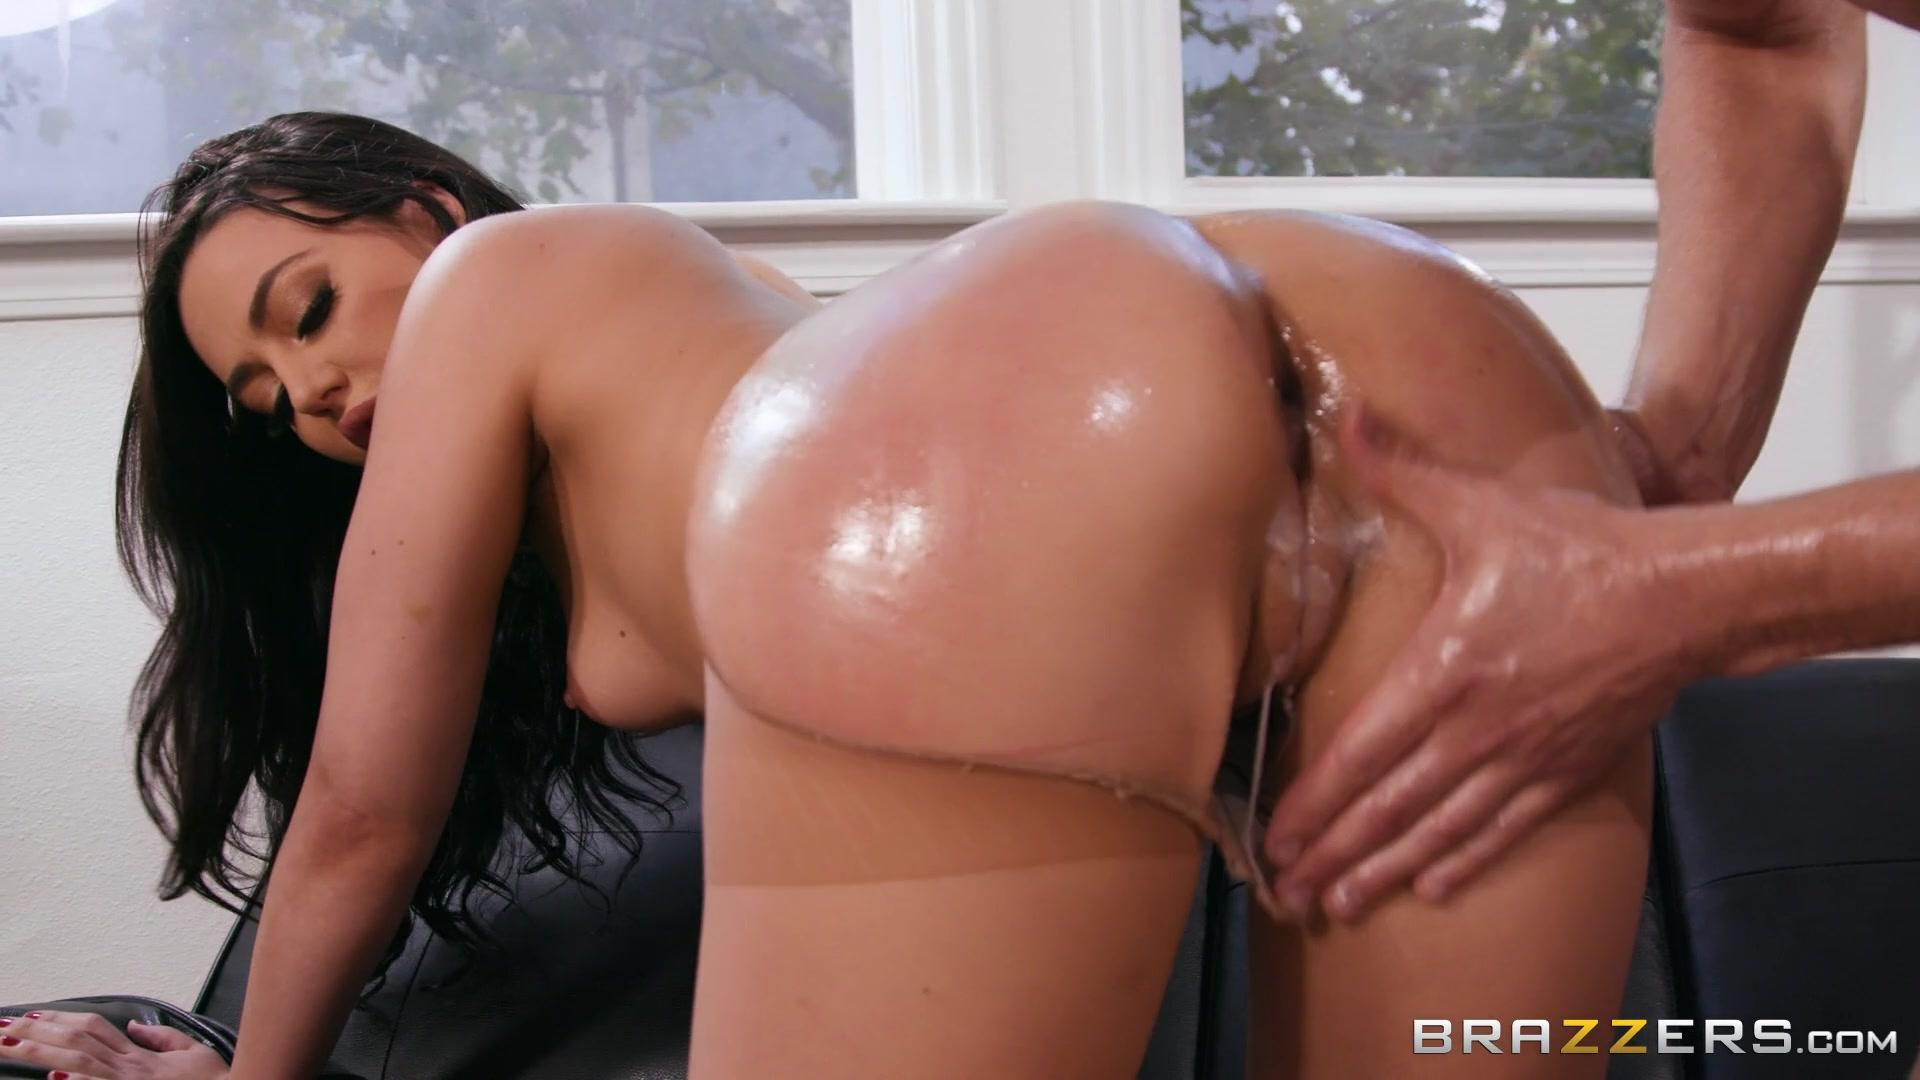 Big Butts Like It Big – Whitney Wright Dirty Loads